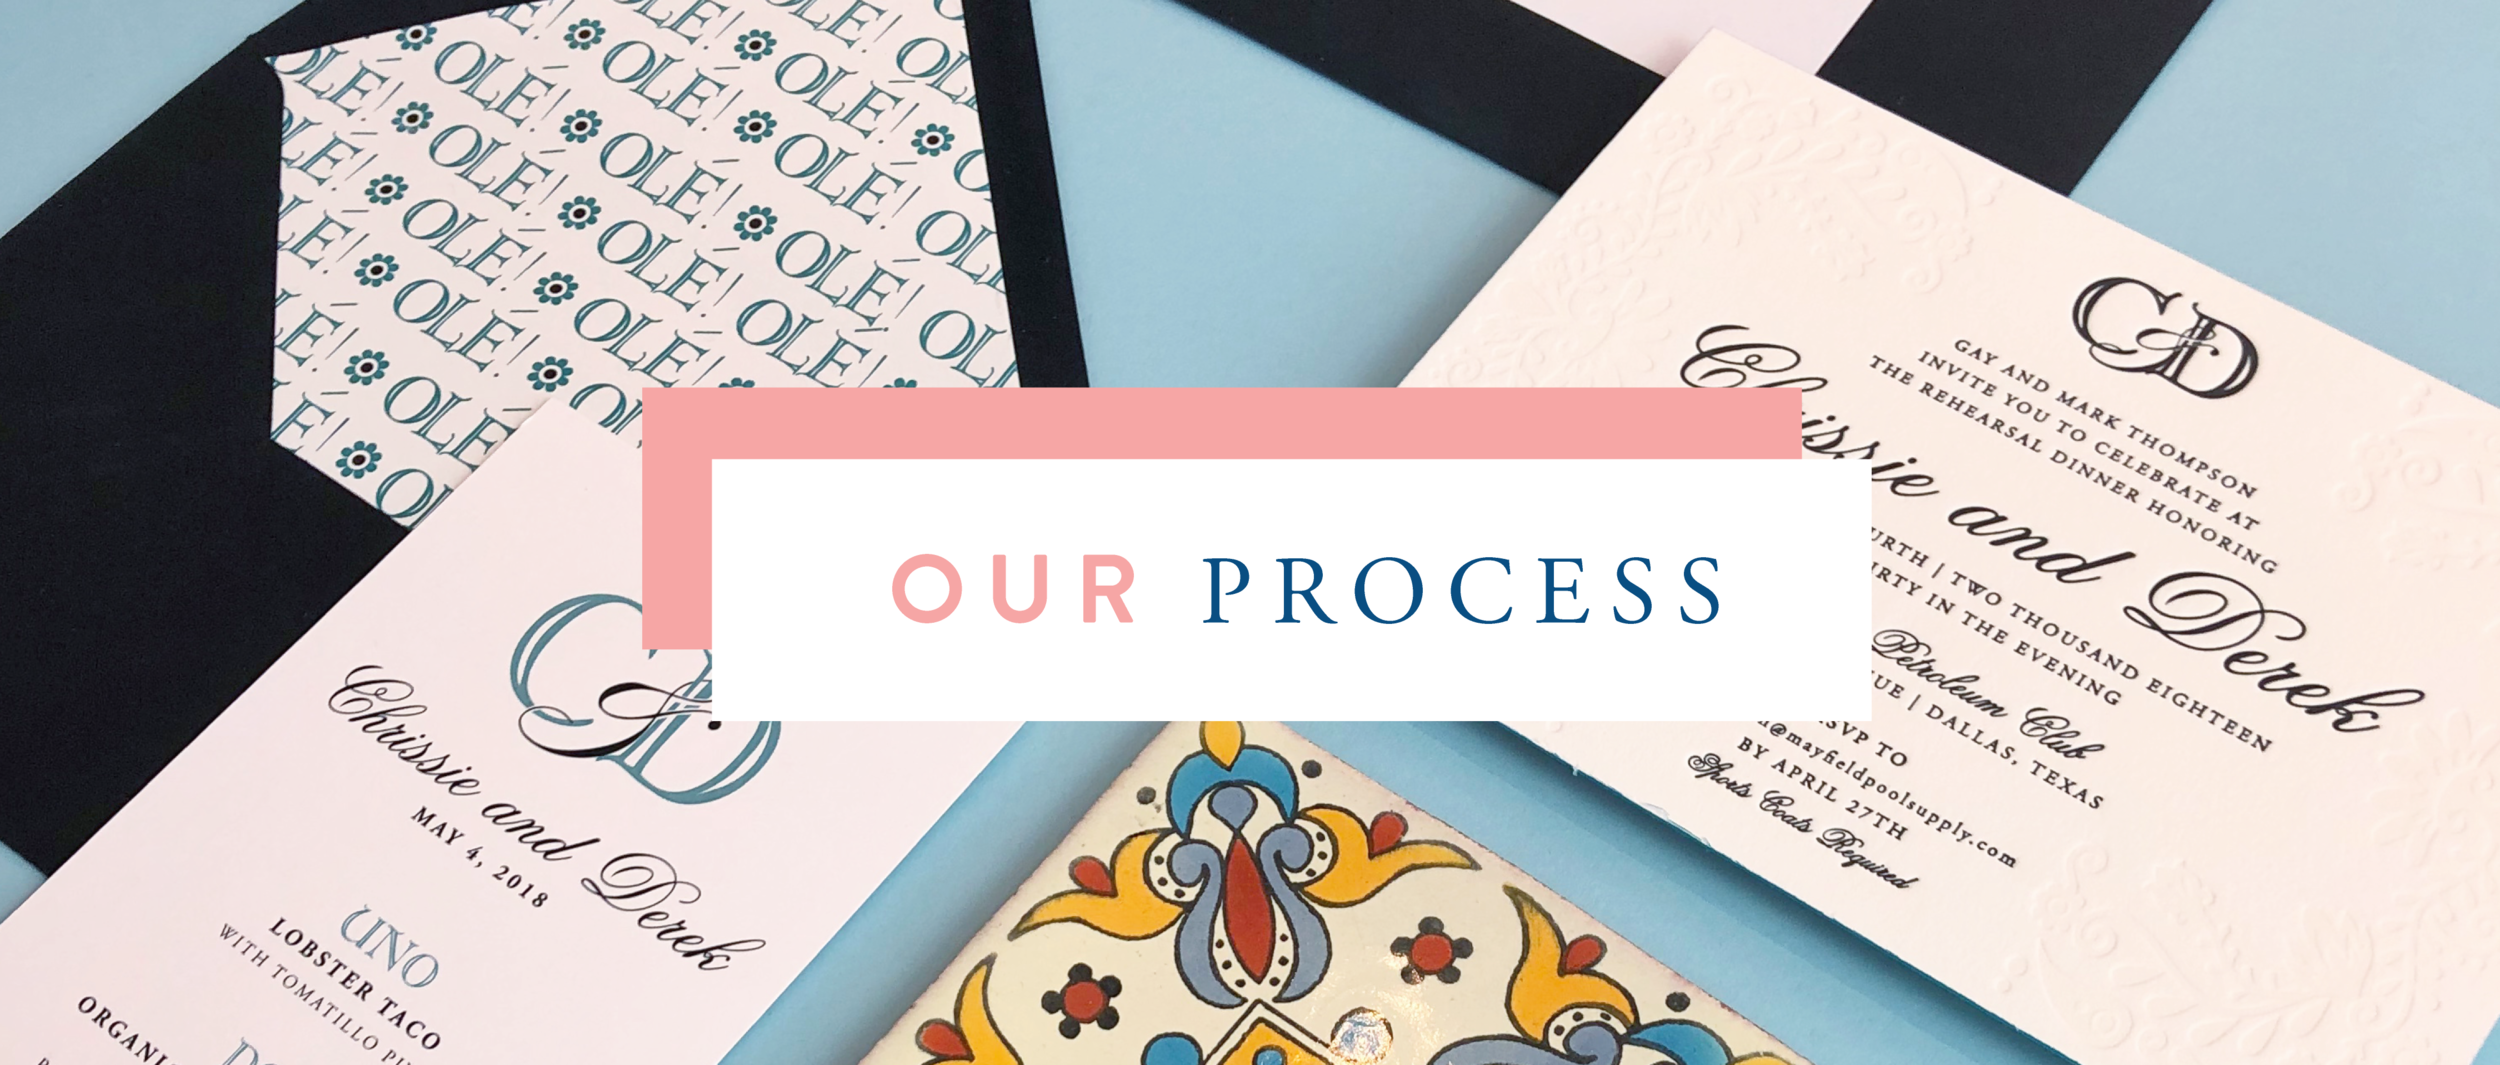 OUR PROCESS-01.png